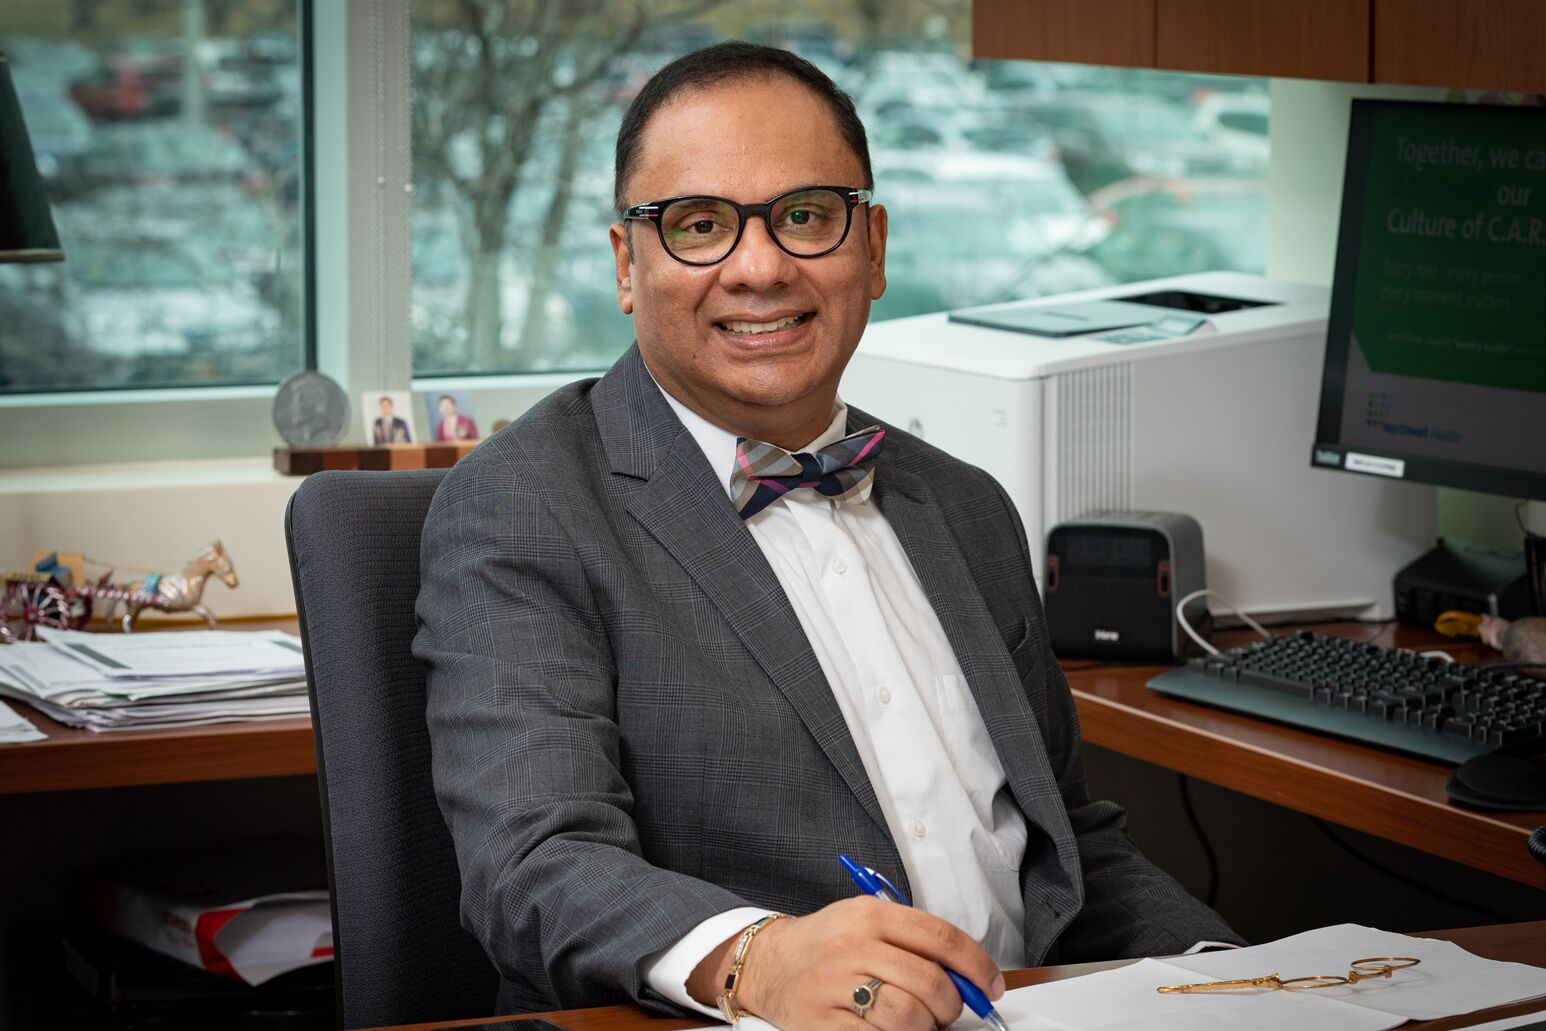 Wasif Saif, MD, sits at a desk in his office. He is the new deputy physician-in-chief and director of medical oncology for the Northwell Health Cancer Institute